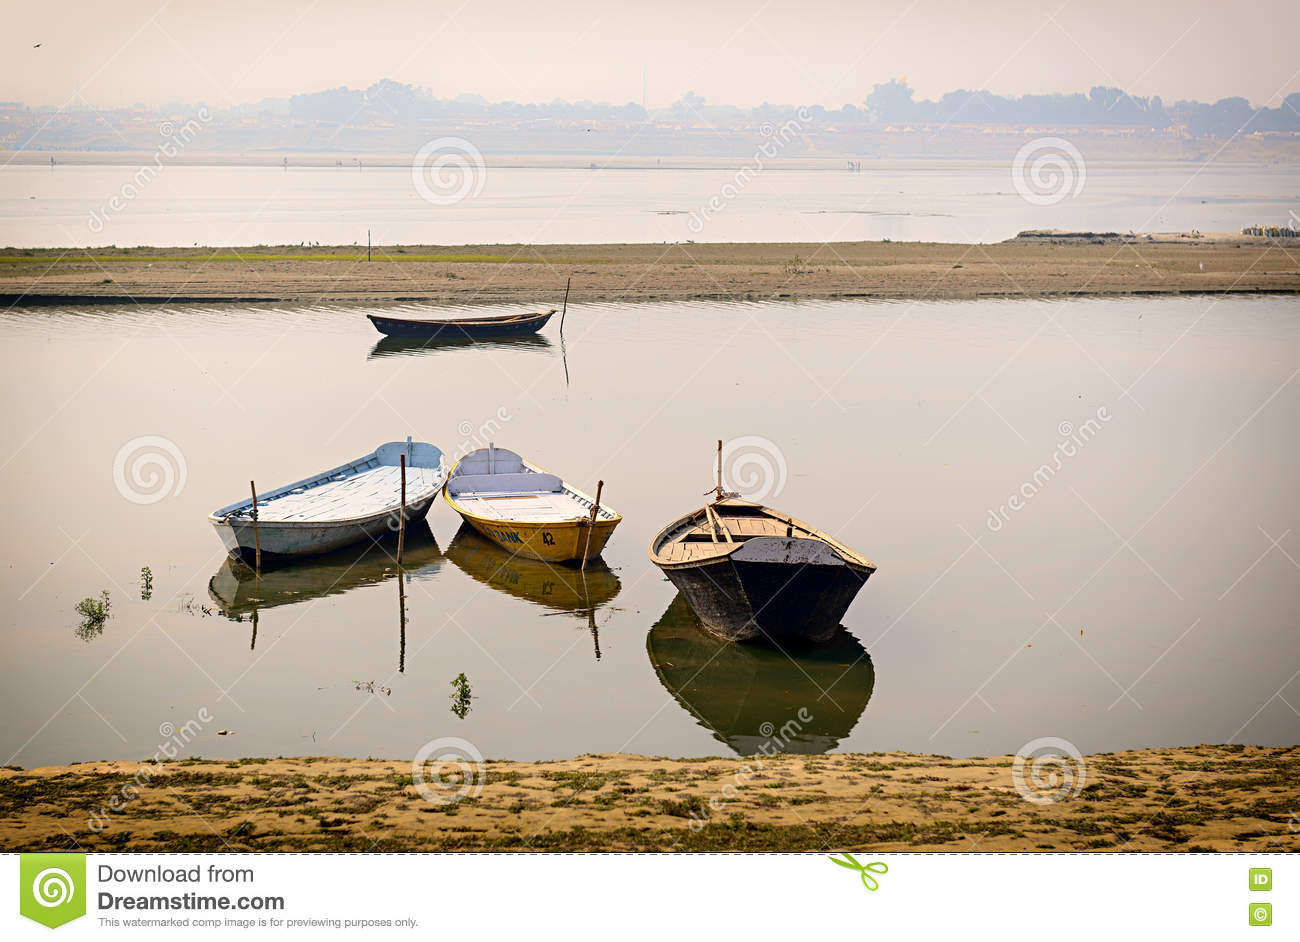 Boates im Ganges in Allahabad, Indien